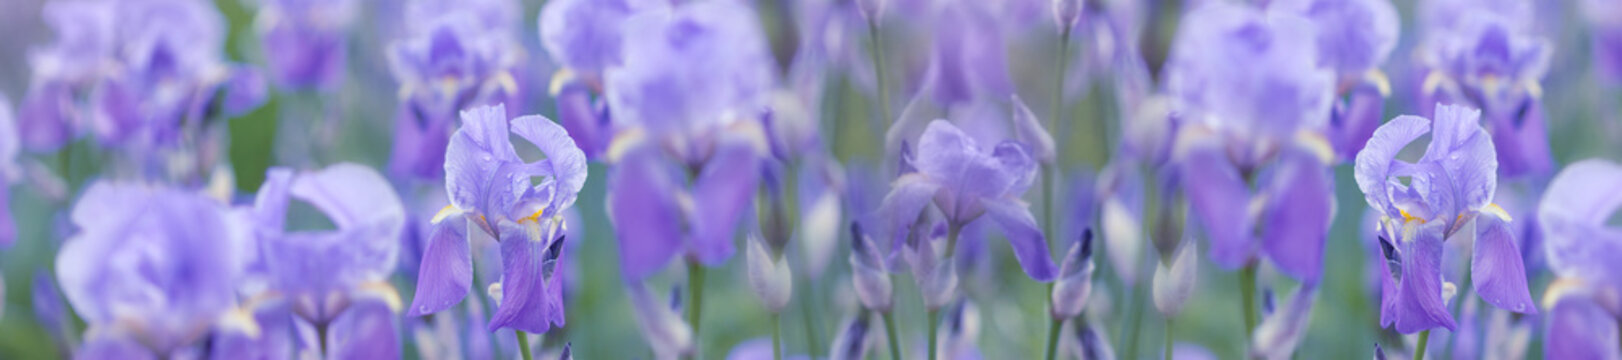 panorama spring background fresh  violet irises